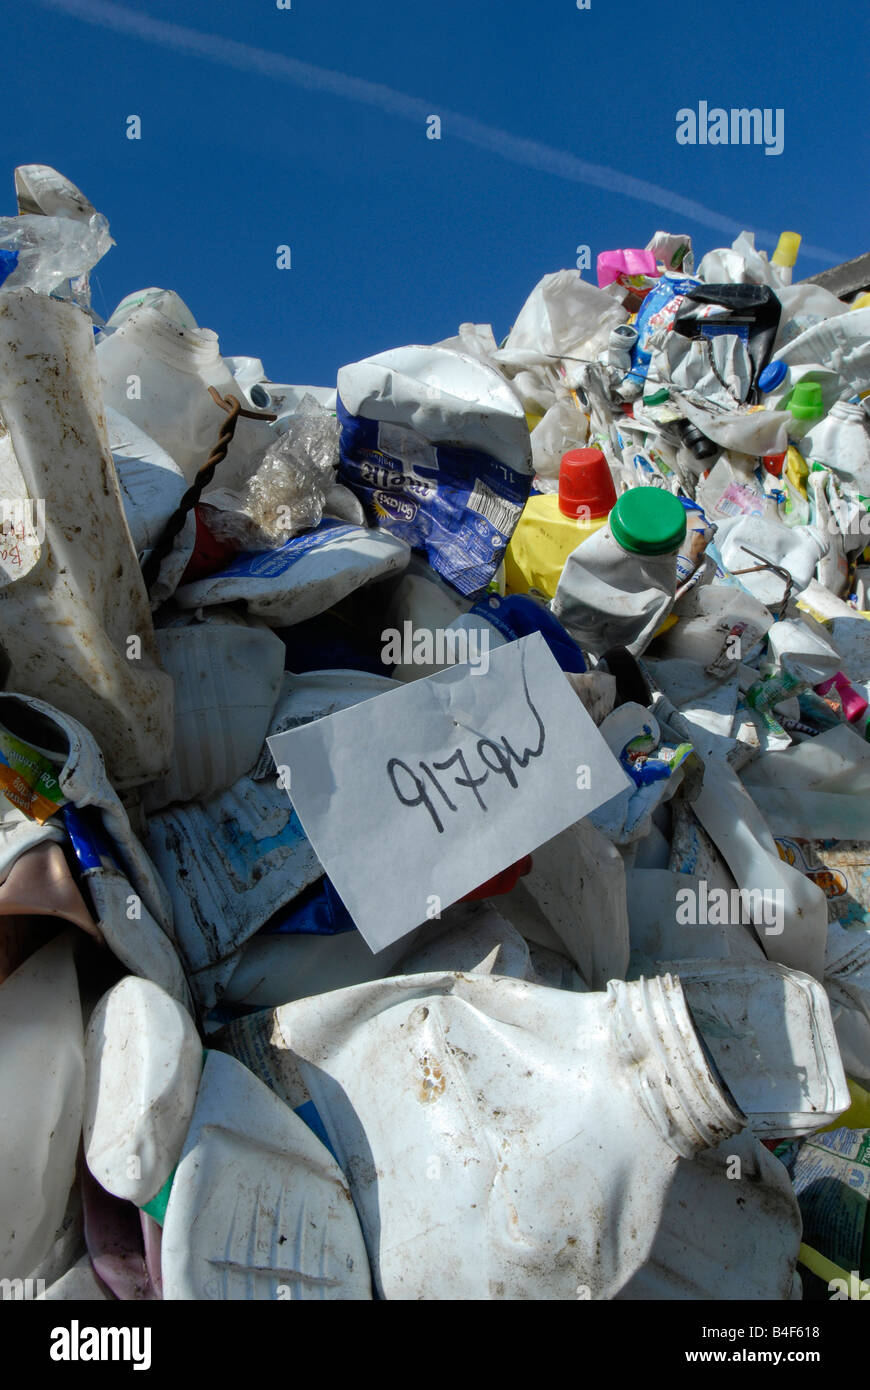 Bales of waste plastic bottles awaiting recycling at a reprocessing plant - Stock Image